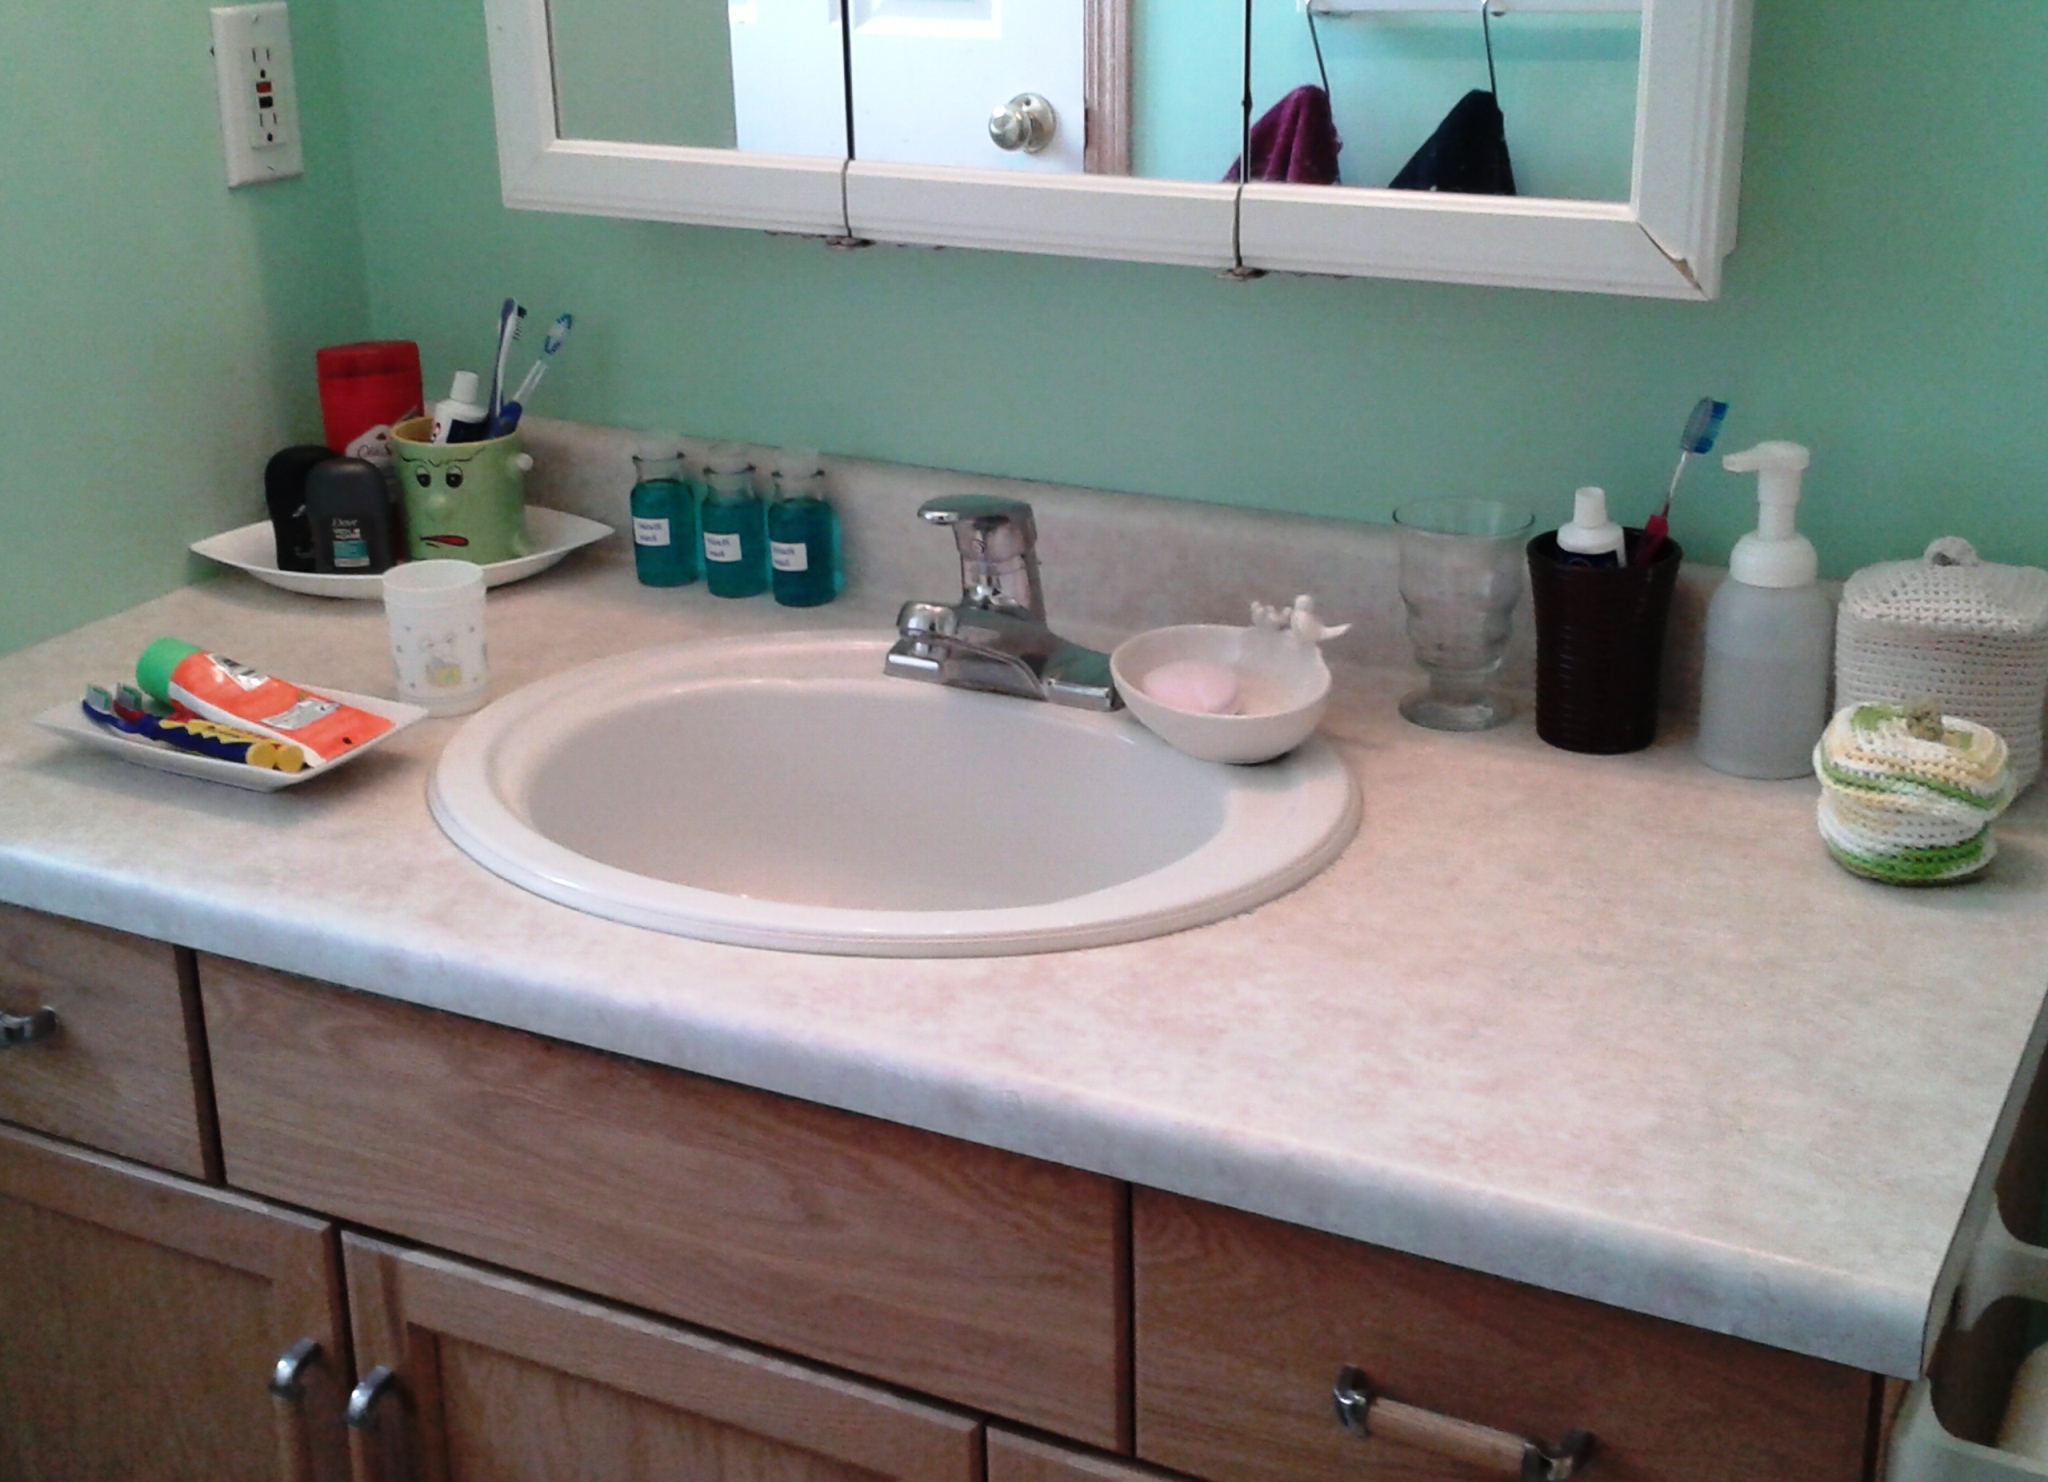 Vanity organization ideas the instant tricks homesfeed - How to decorate a bathroom counter ...